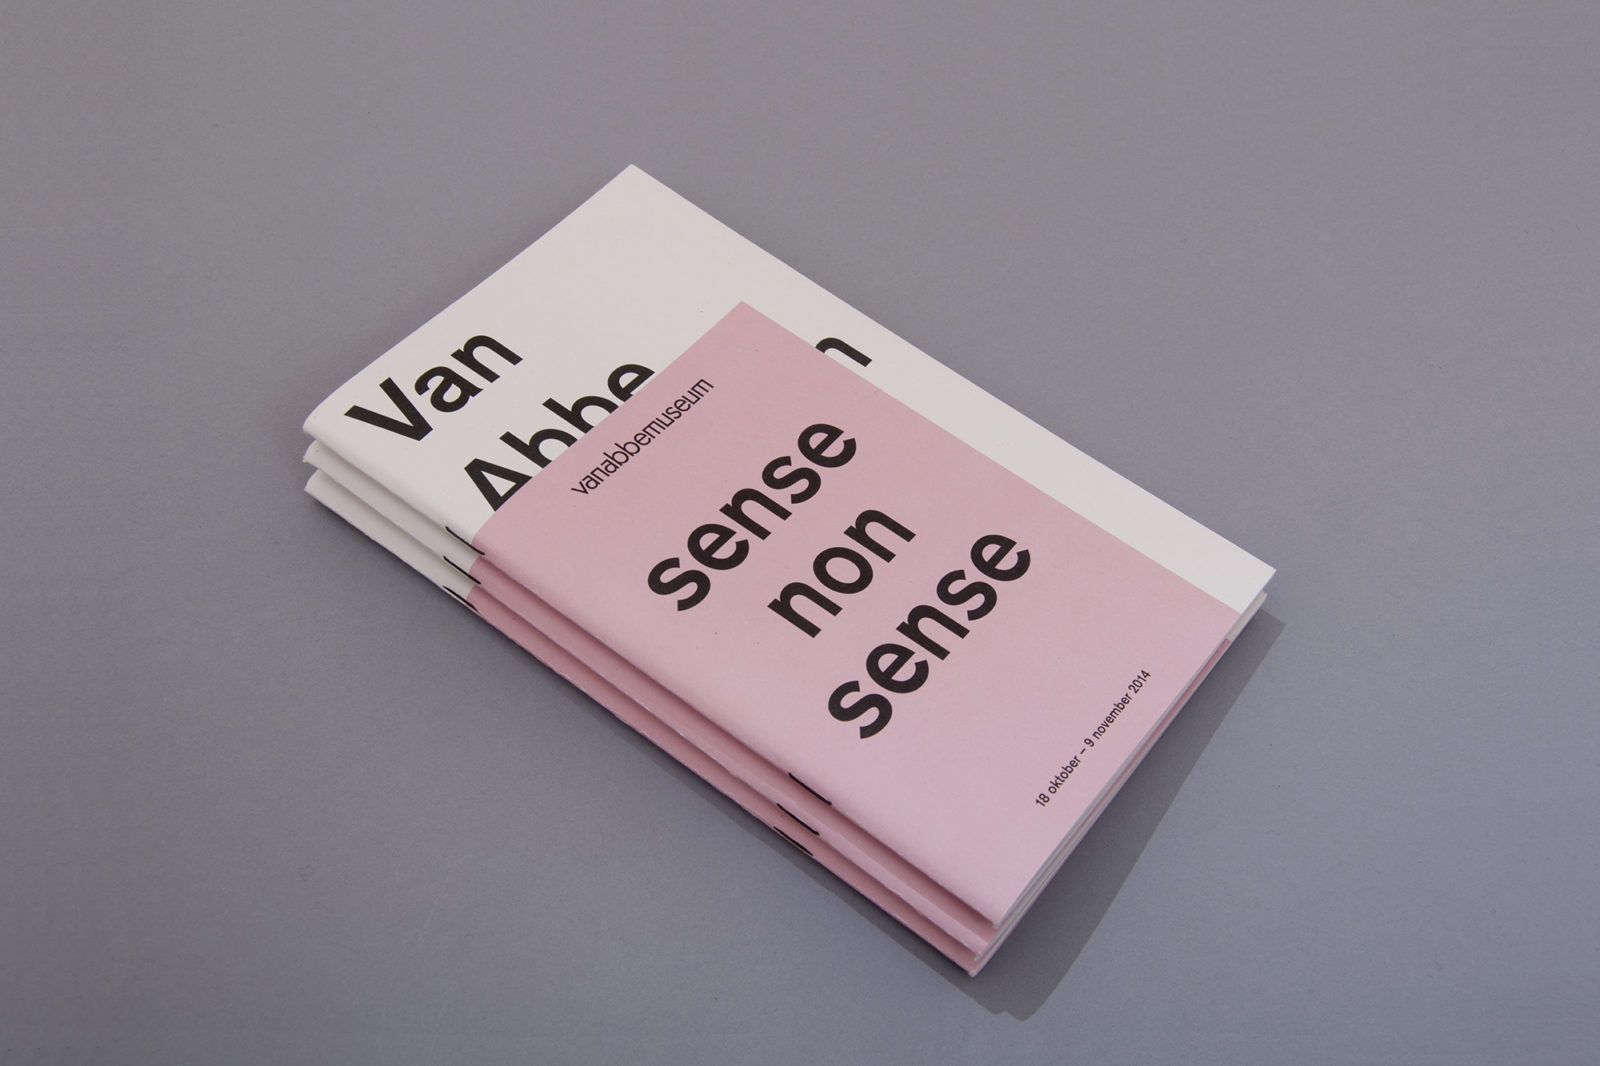 Haller Brun Design Academy Eindhoven Graduation Show 2014 Sense Nonsense Van Abbemuseum exhibition catalogue